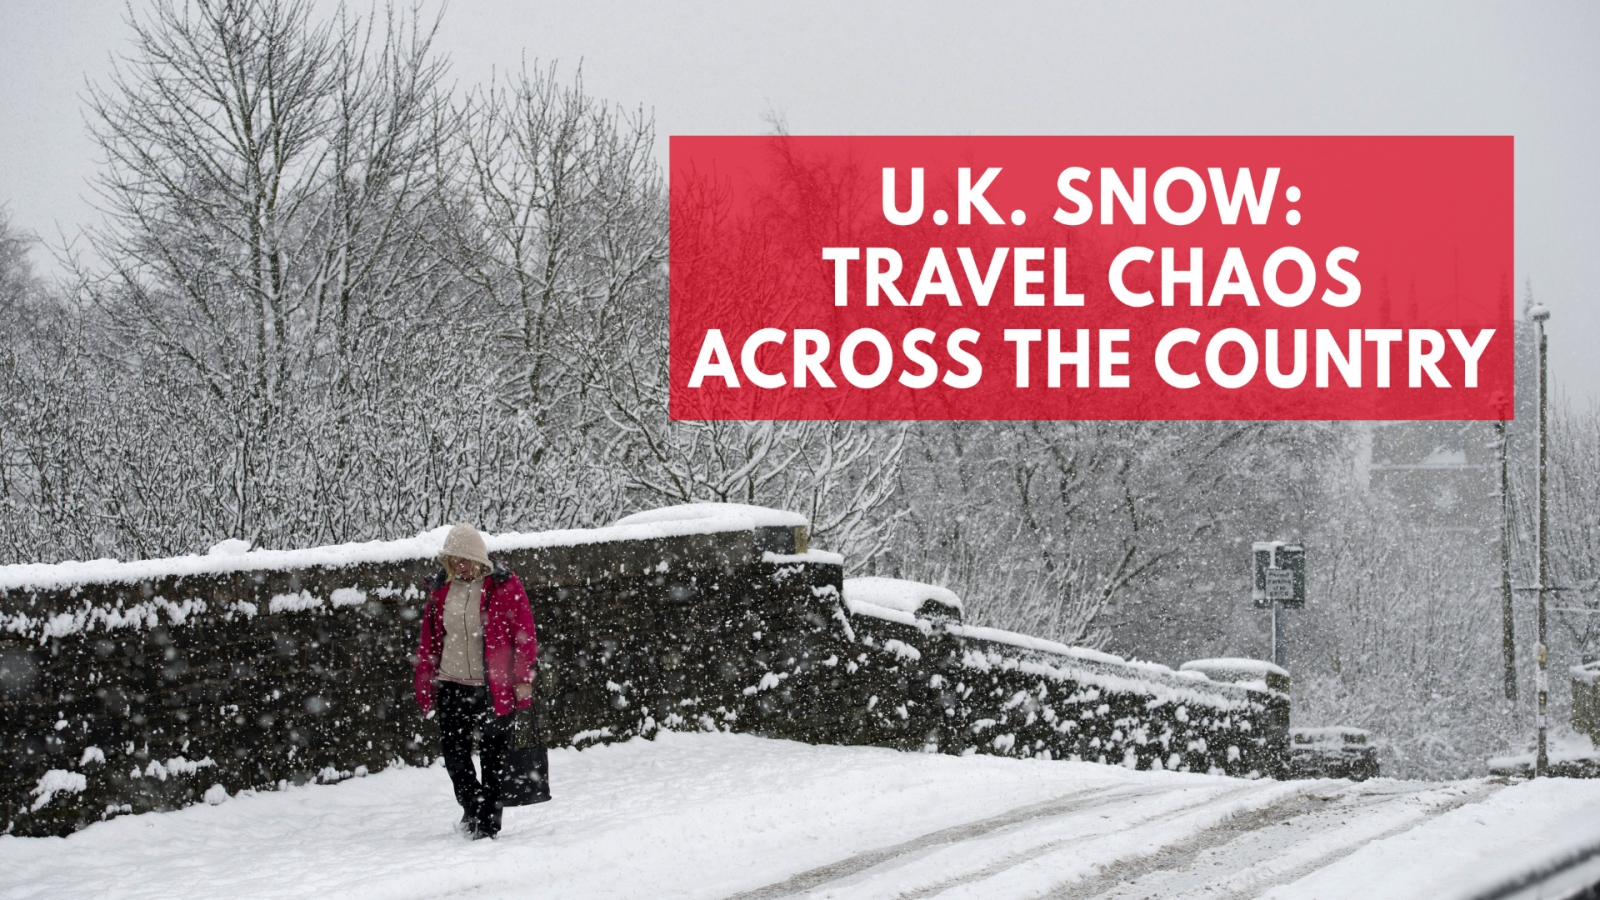 UK weather warning after recent snowfall blanketed the country